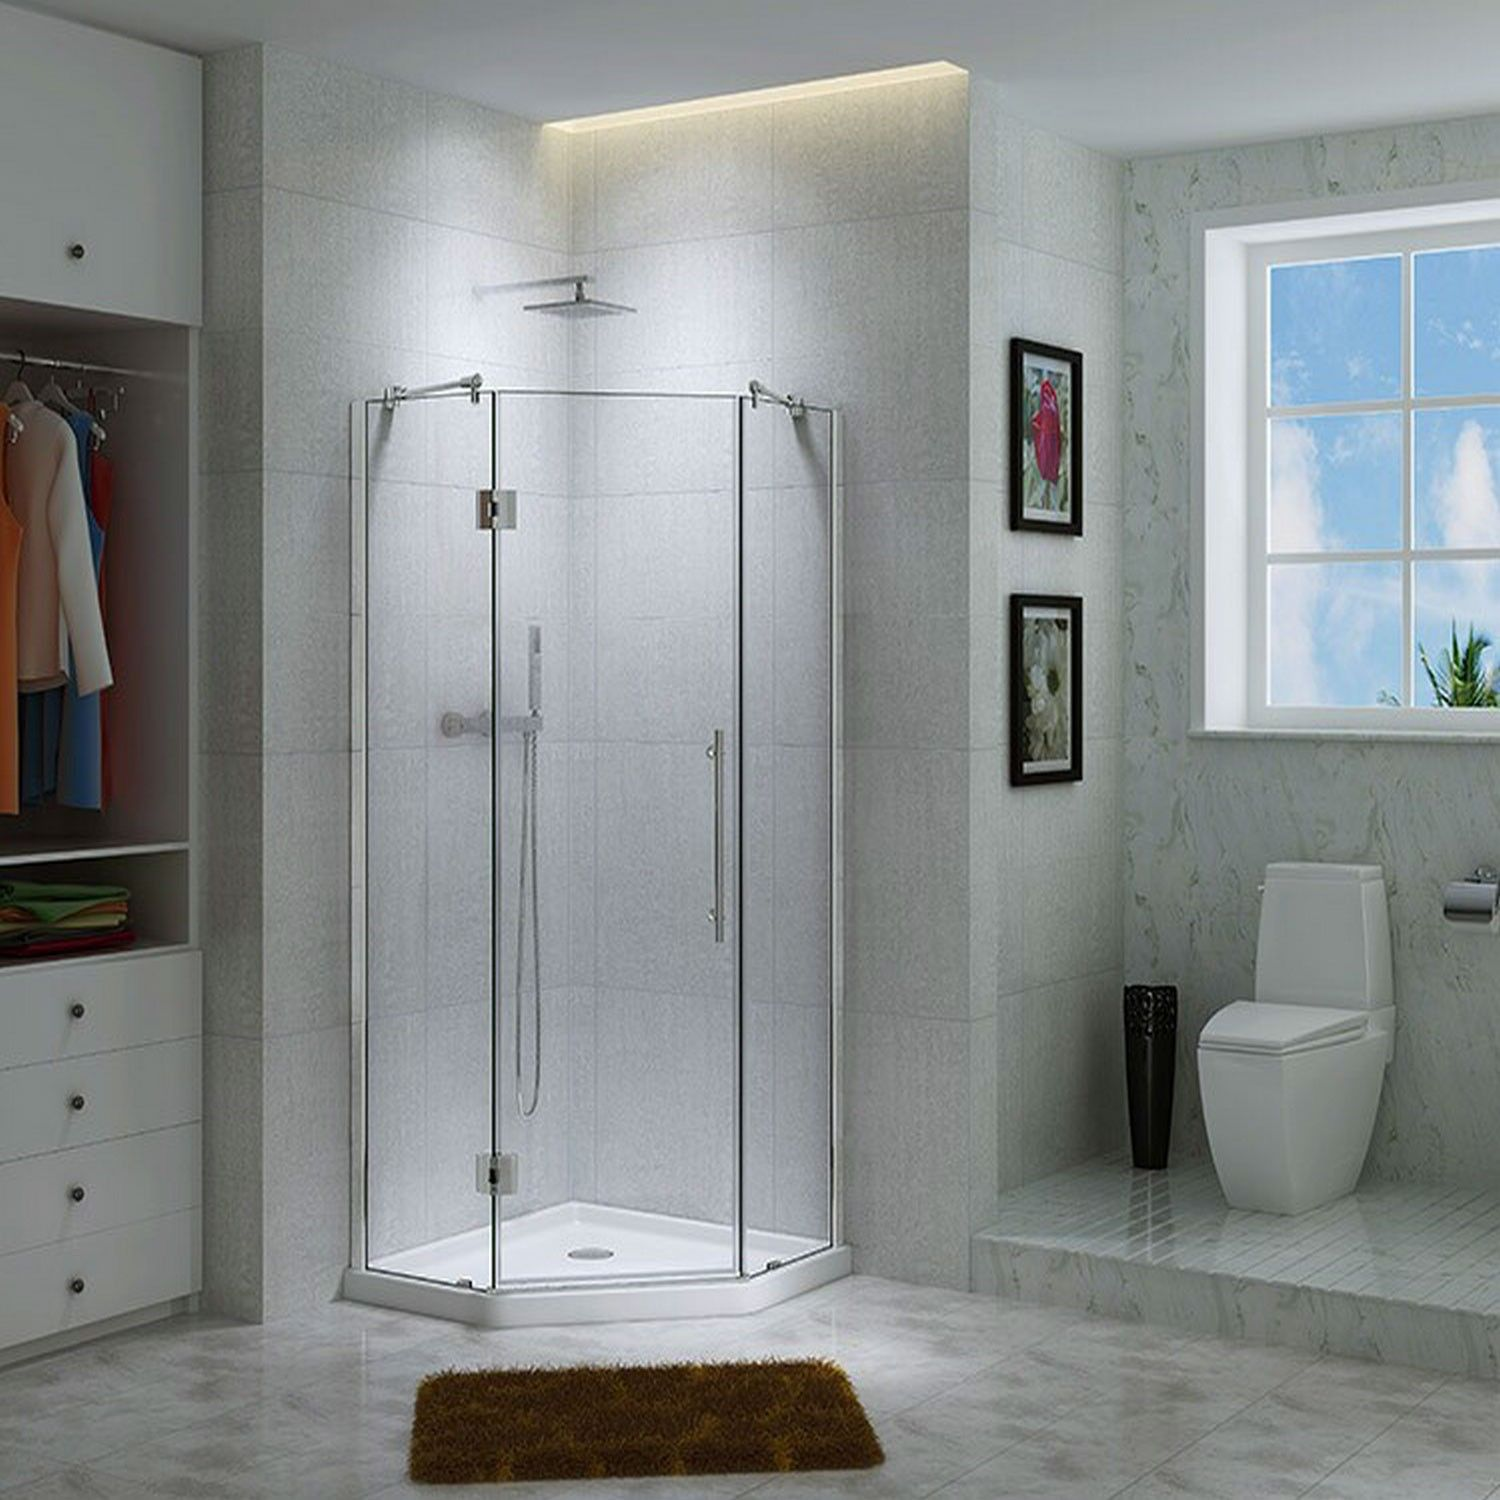 42 X 42 Charlene Corner Shower Enclosure With Tray With